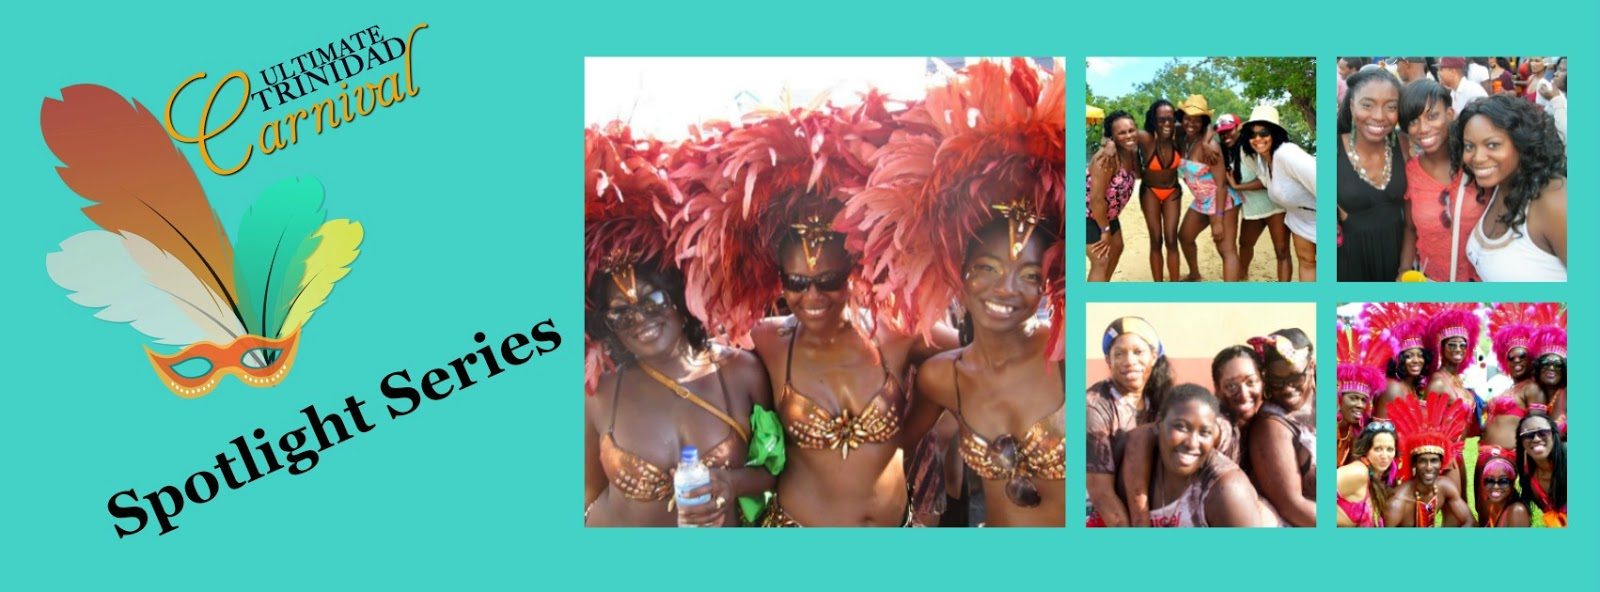 Trinidad Carnival Banners Contact Banners